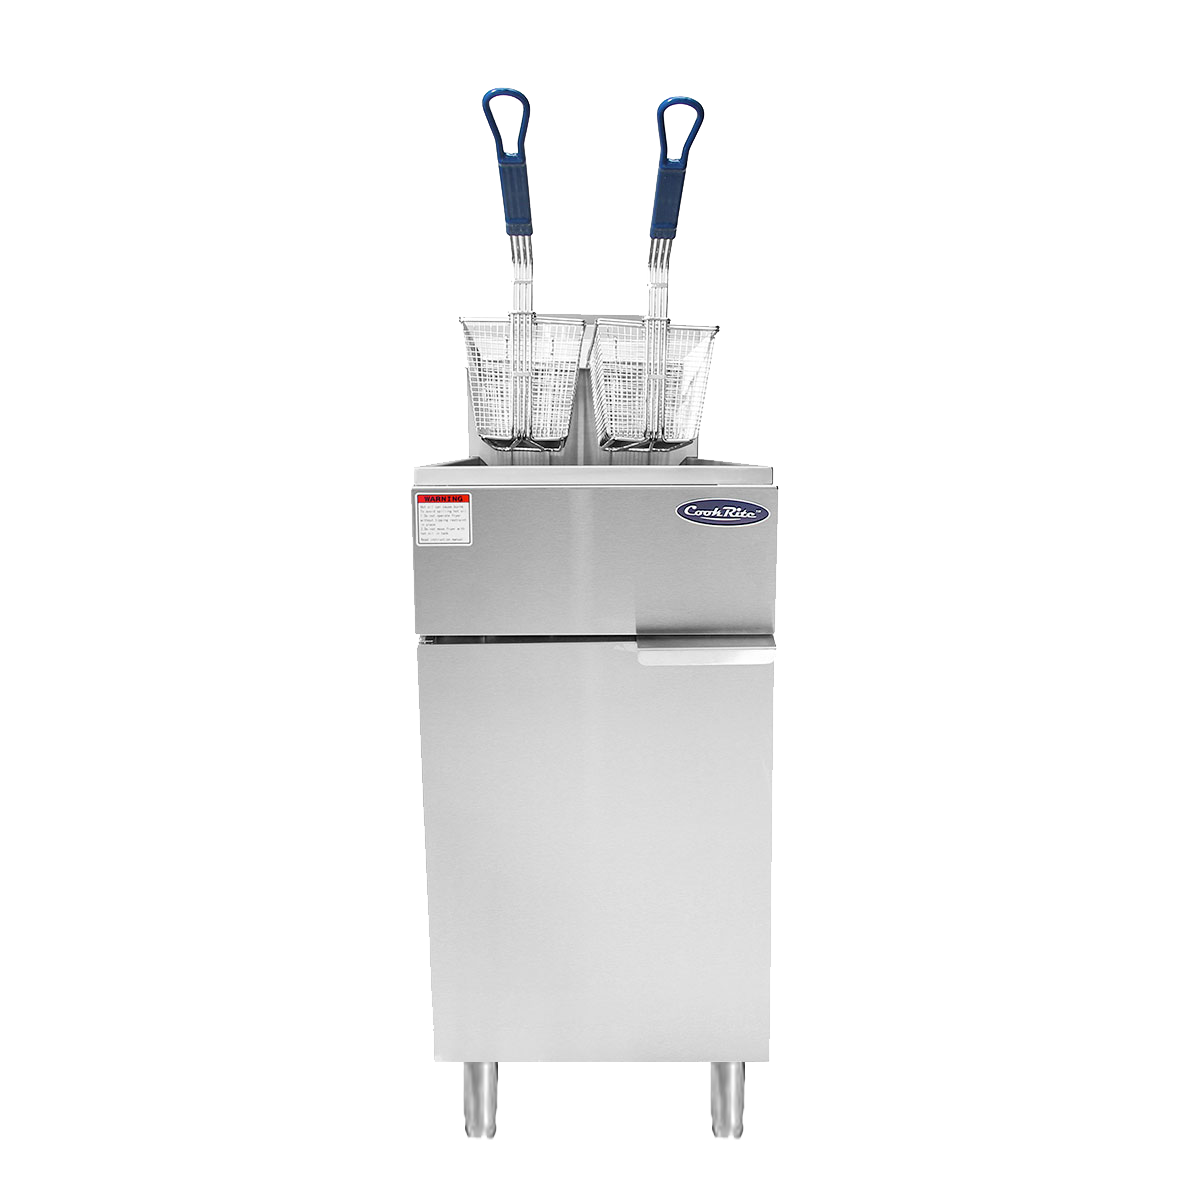 Small commercial Fryer